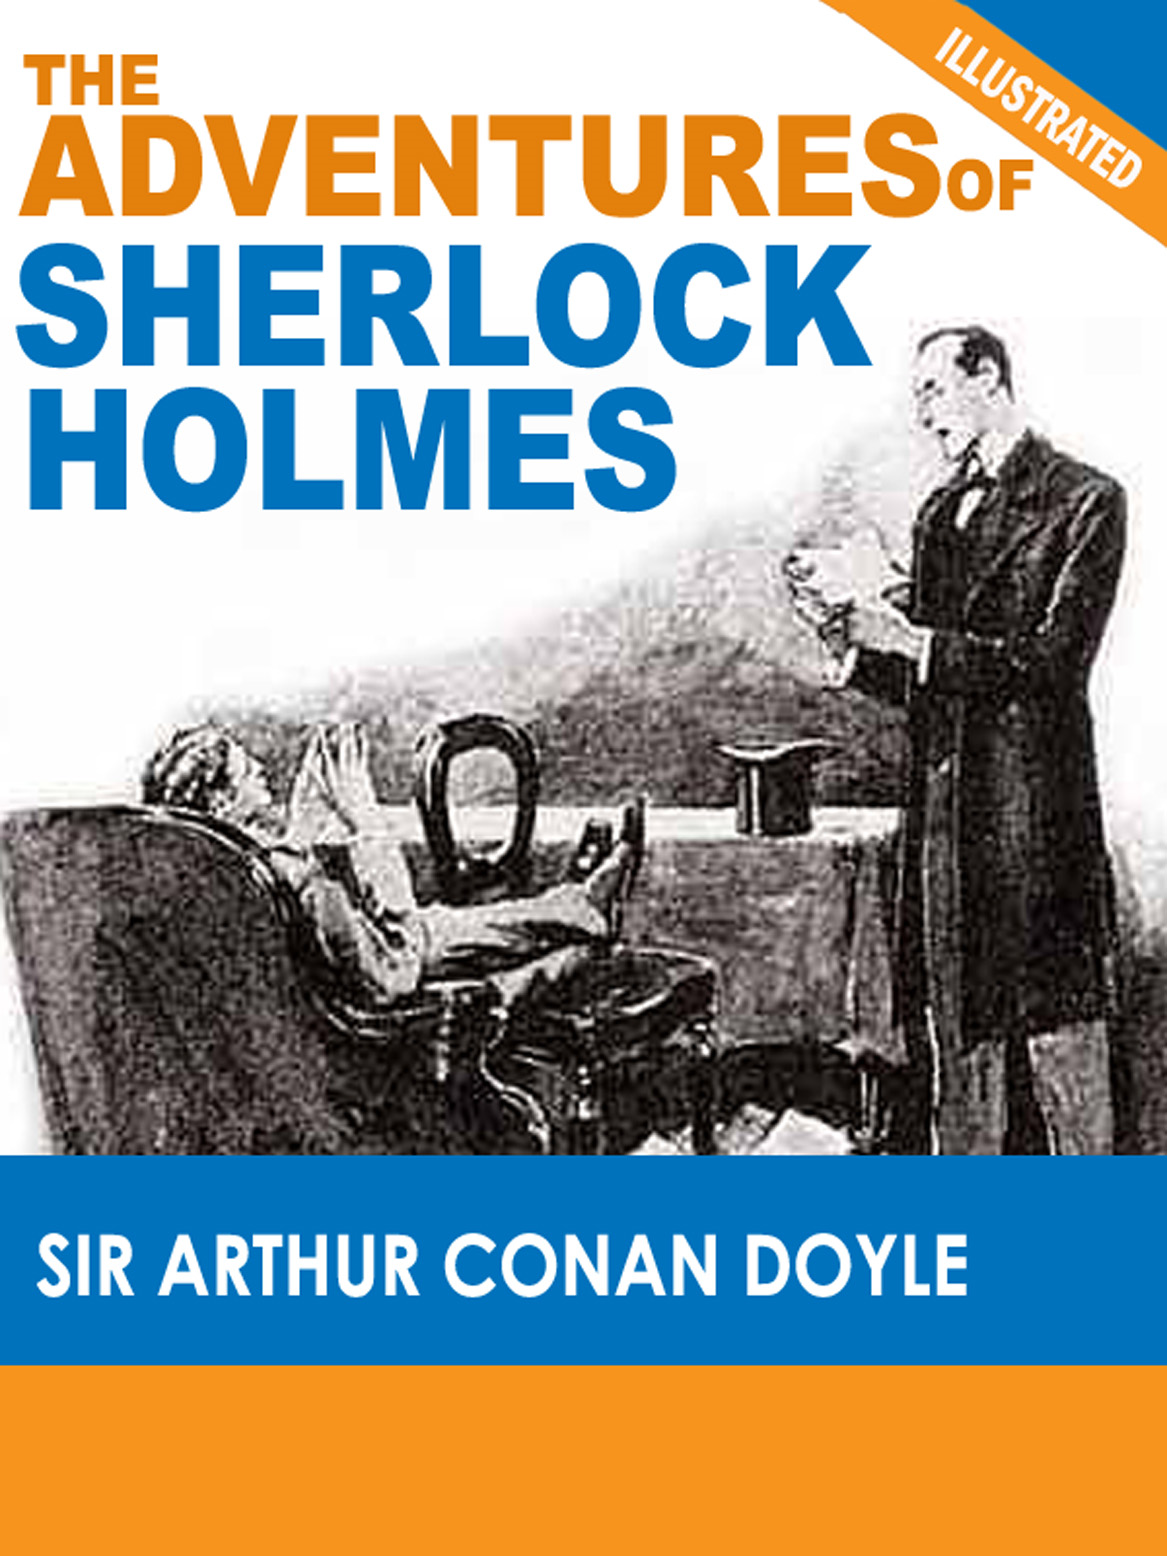 The Adventures of Sherlock Holmes (Illustrated) By: Sir Arthur Conan Doyle